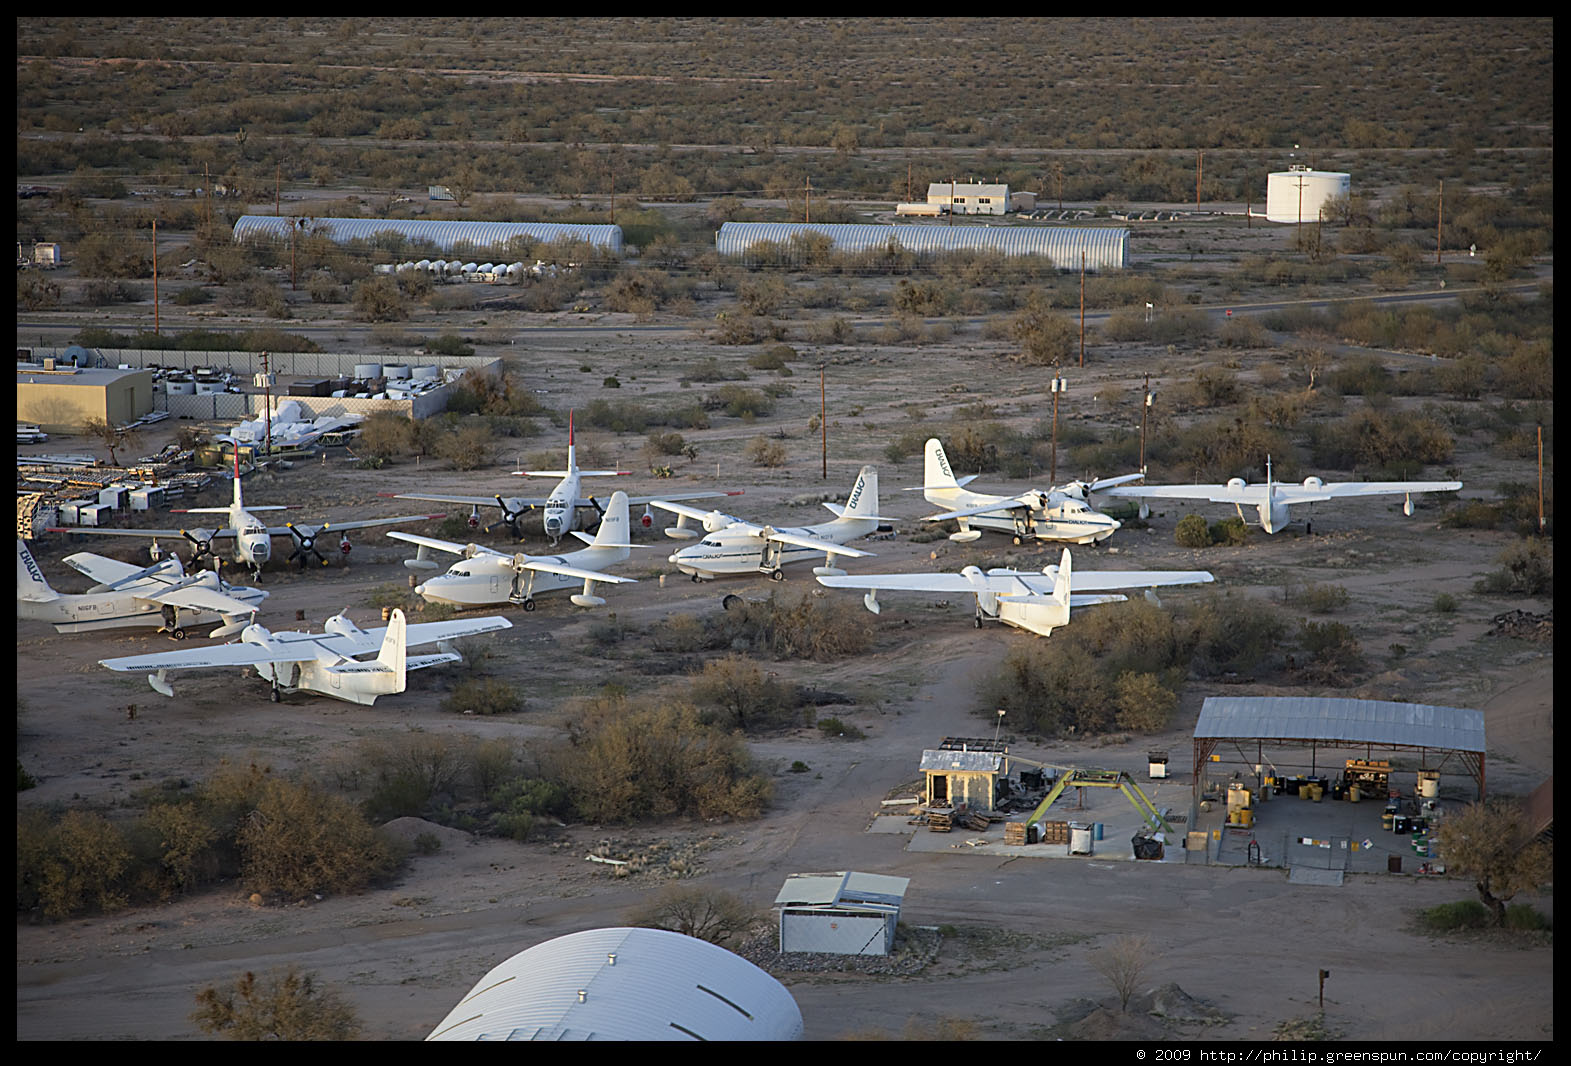 helicopter graveyard with Arizona Aircraft Boneyard 12 on Abandoned Military Bases Vietnam also Types Of Jet Propulsion Engine 1 in addition Abandoned Plane Graveyard Ohio moreover Photos That Inspired The Good Jihadist as well Woman and Airplanes.